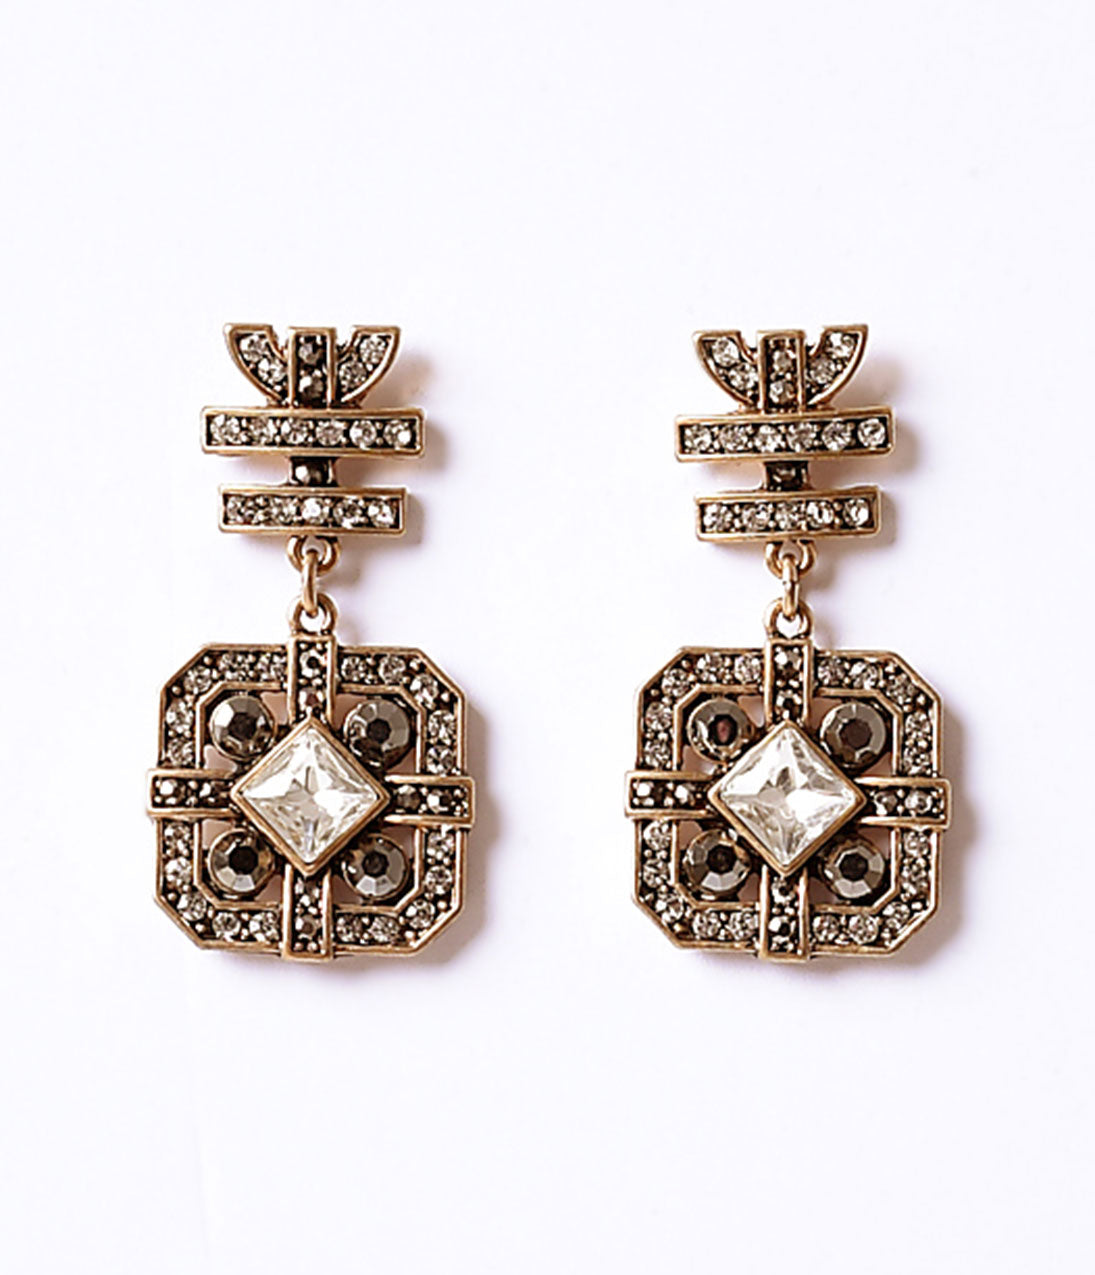 1920s Flapper Costume : How to Guide Gold  Multicolor Crystal Deco Drop Post Earrings $22.00 AT vintagedancer.com